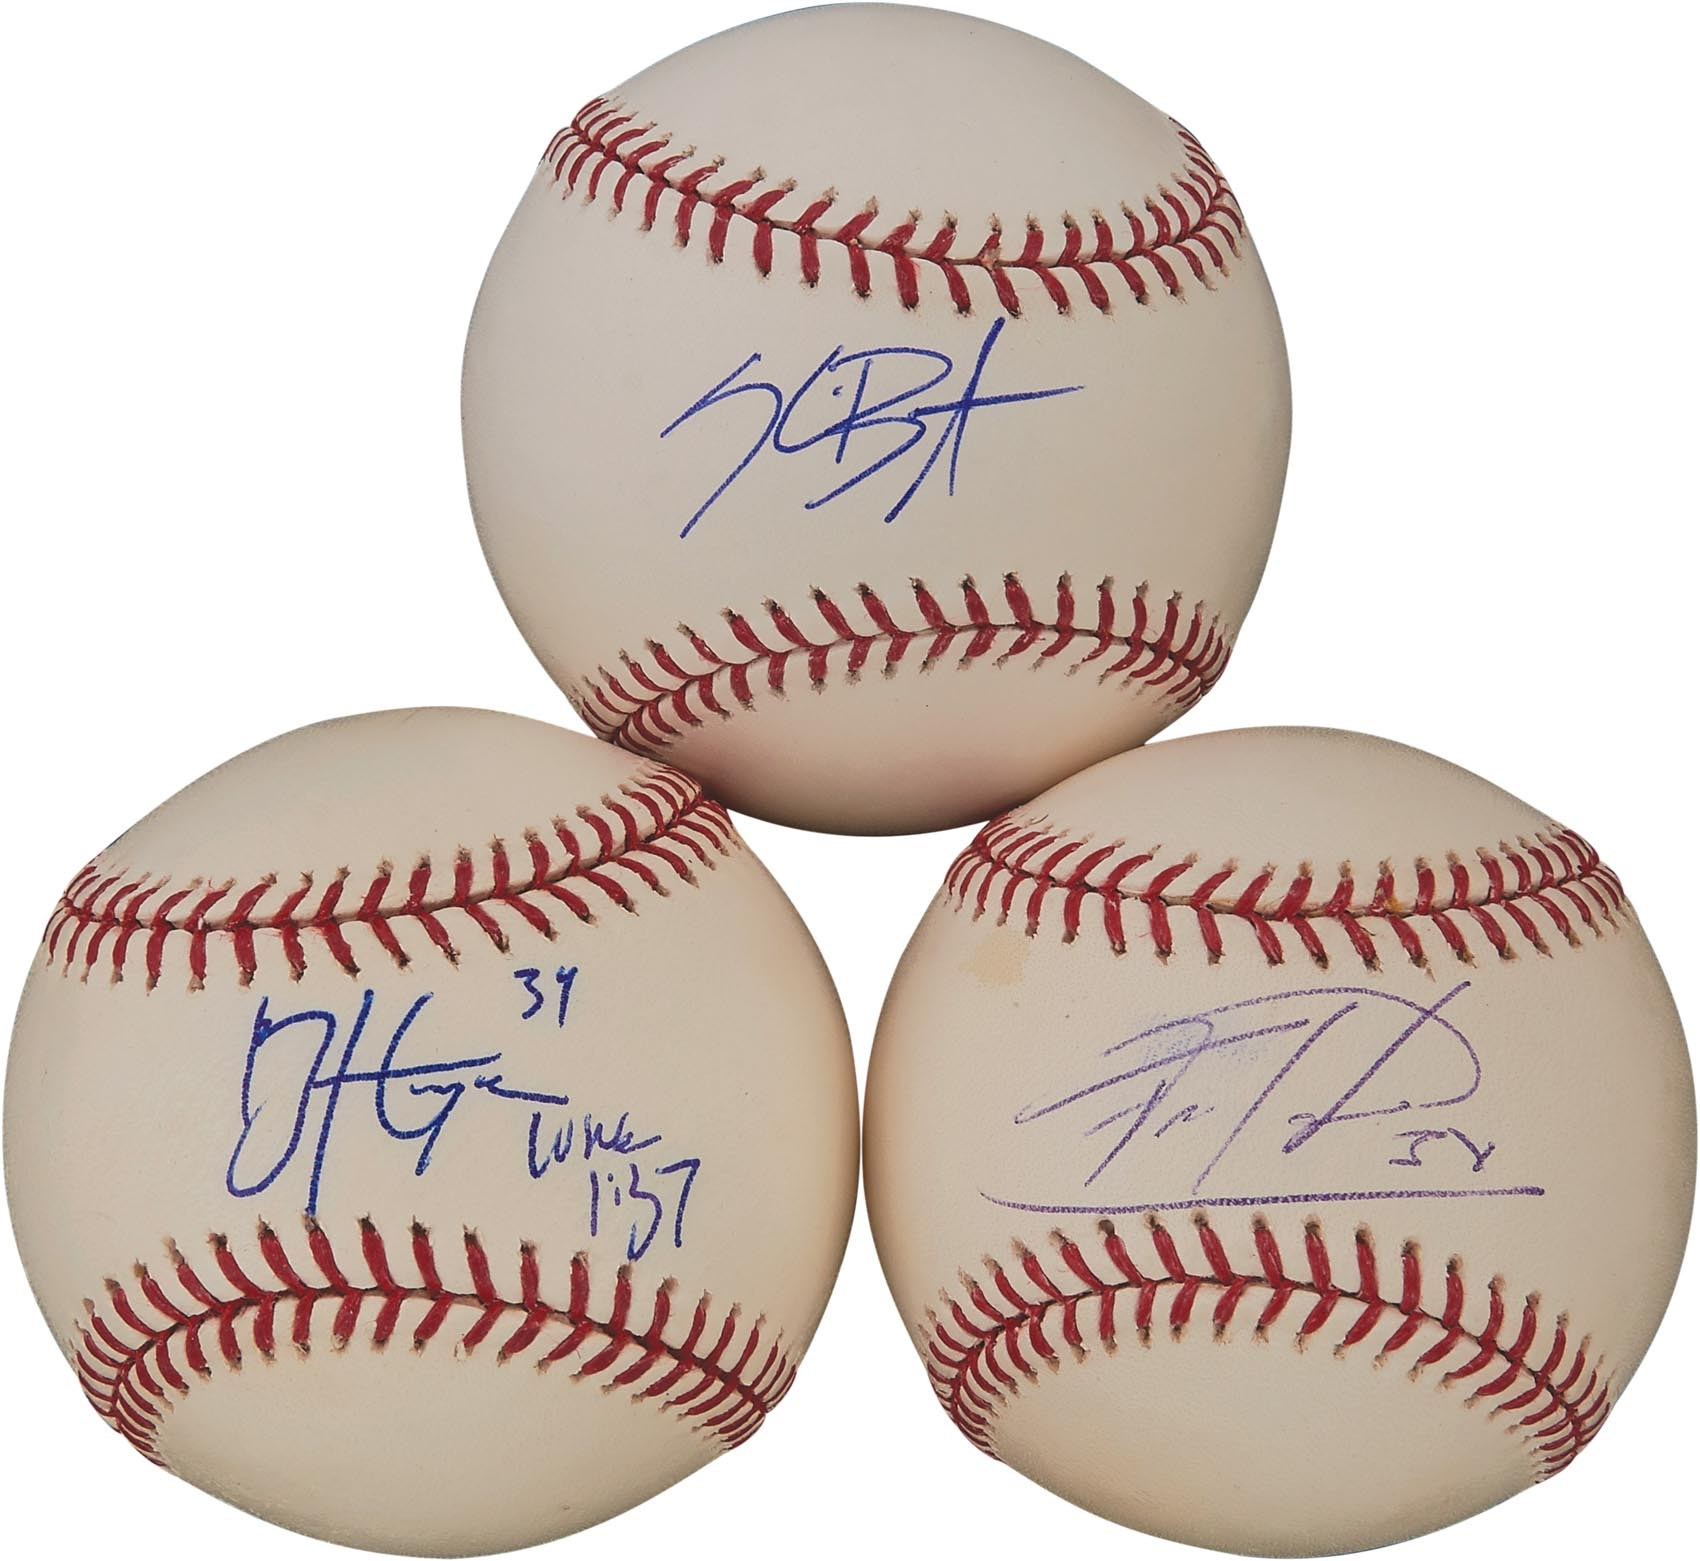 Autographed Baseballs - Monthly 07-18